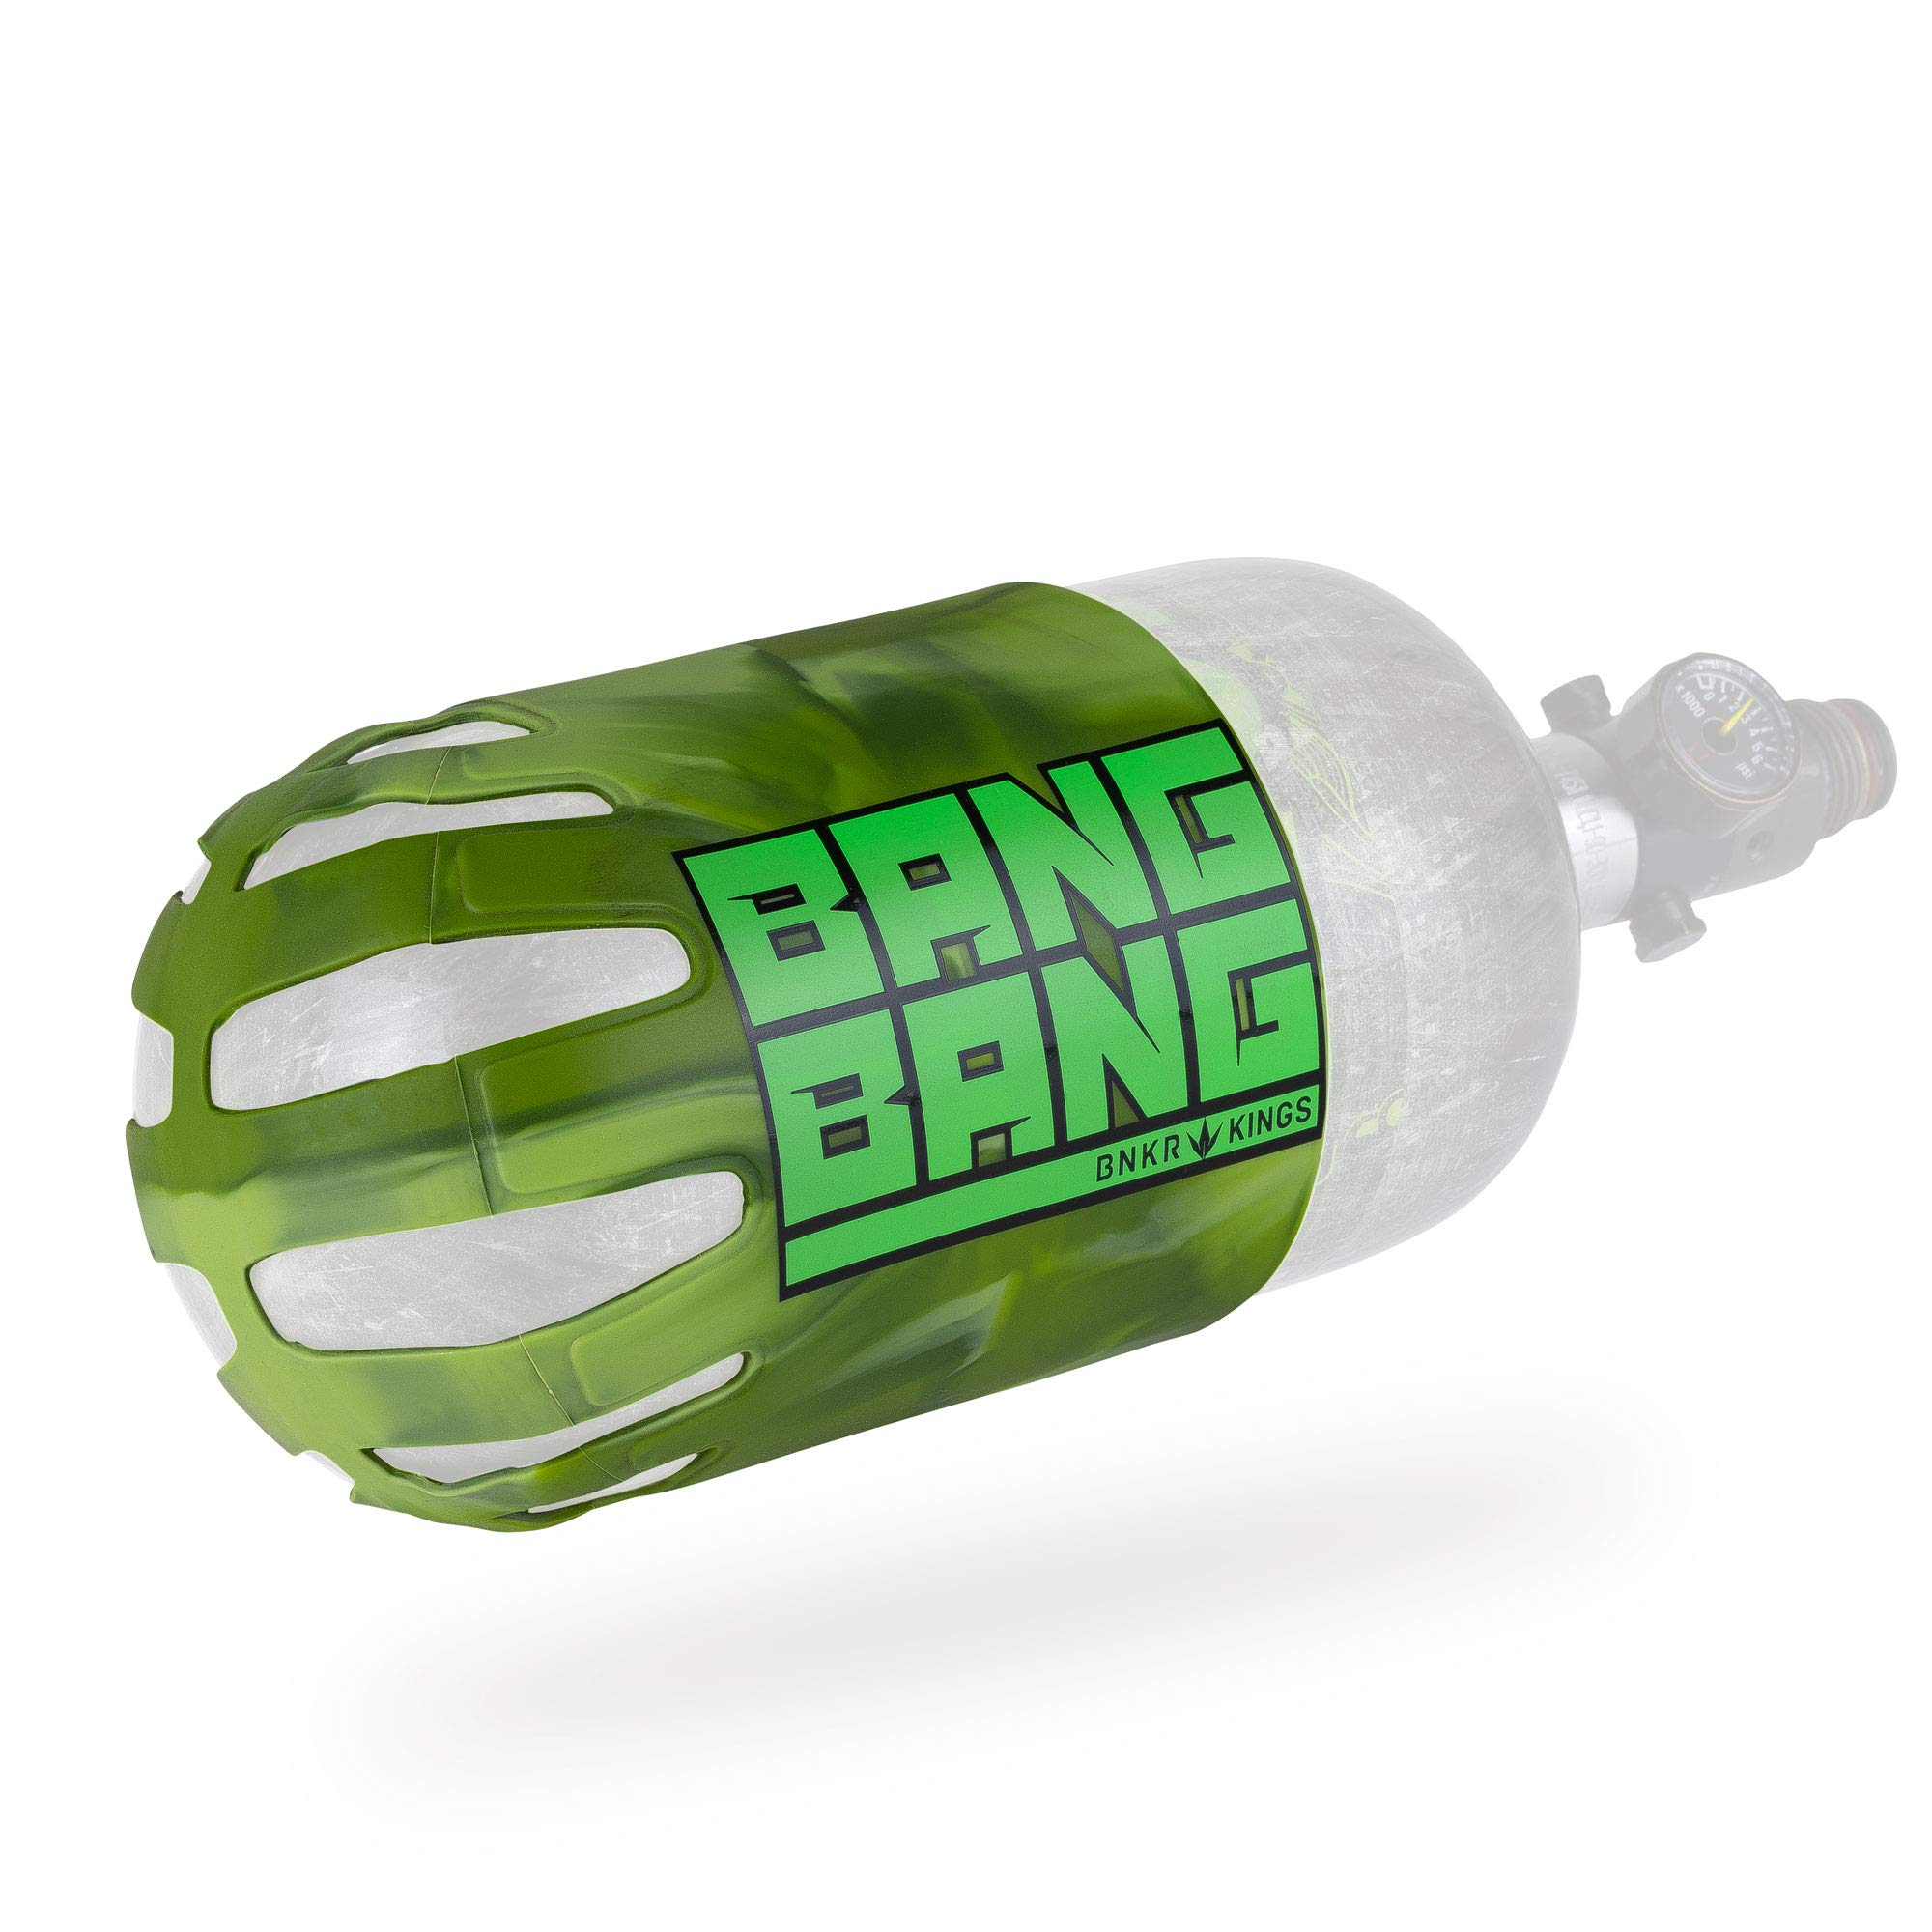 Bunker Kings Knuckle Butt Supreme Carbon Fiber Tank Cover Grip (BANGBANG - Camo) by Bnkr Kings